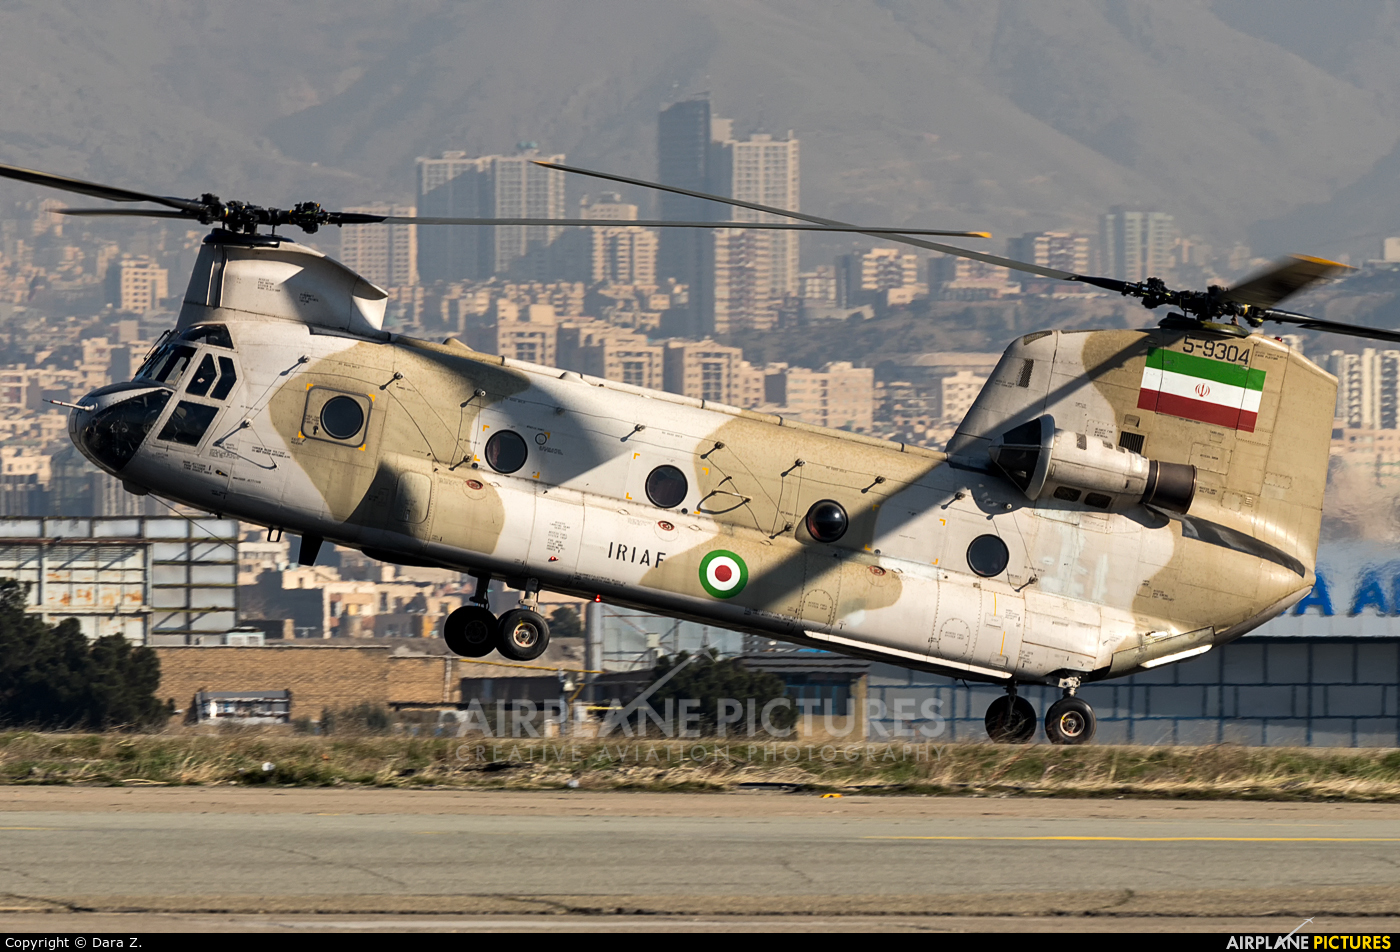 Iran - Islamic Republic Air Force 5-9304 aircraft at Tehran - Mehrabad Intl